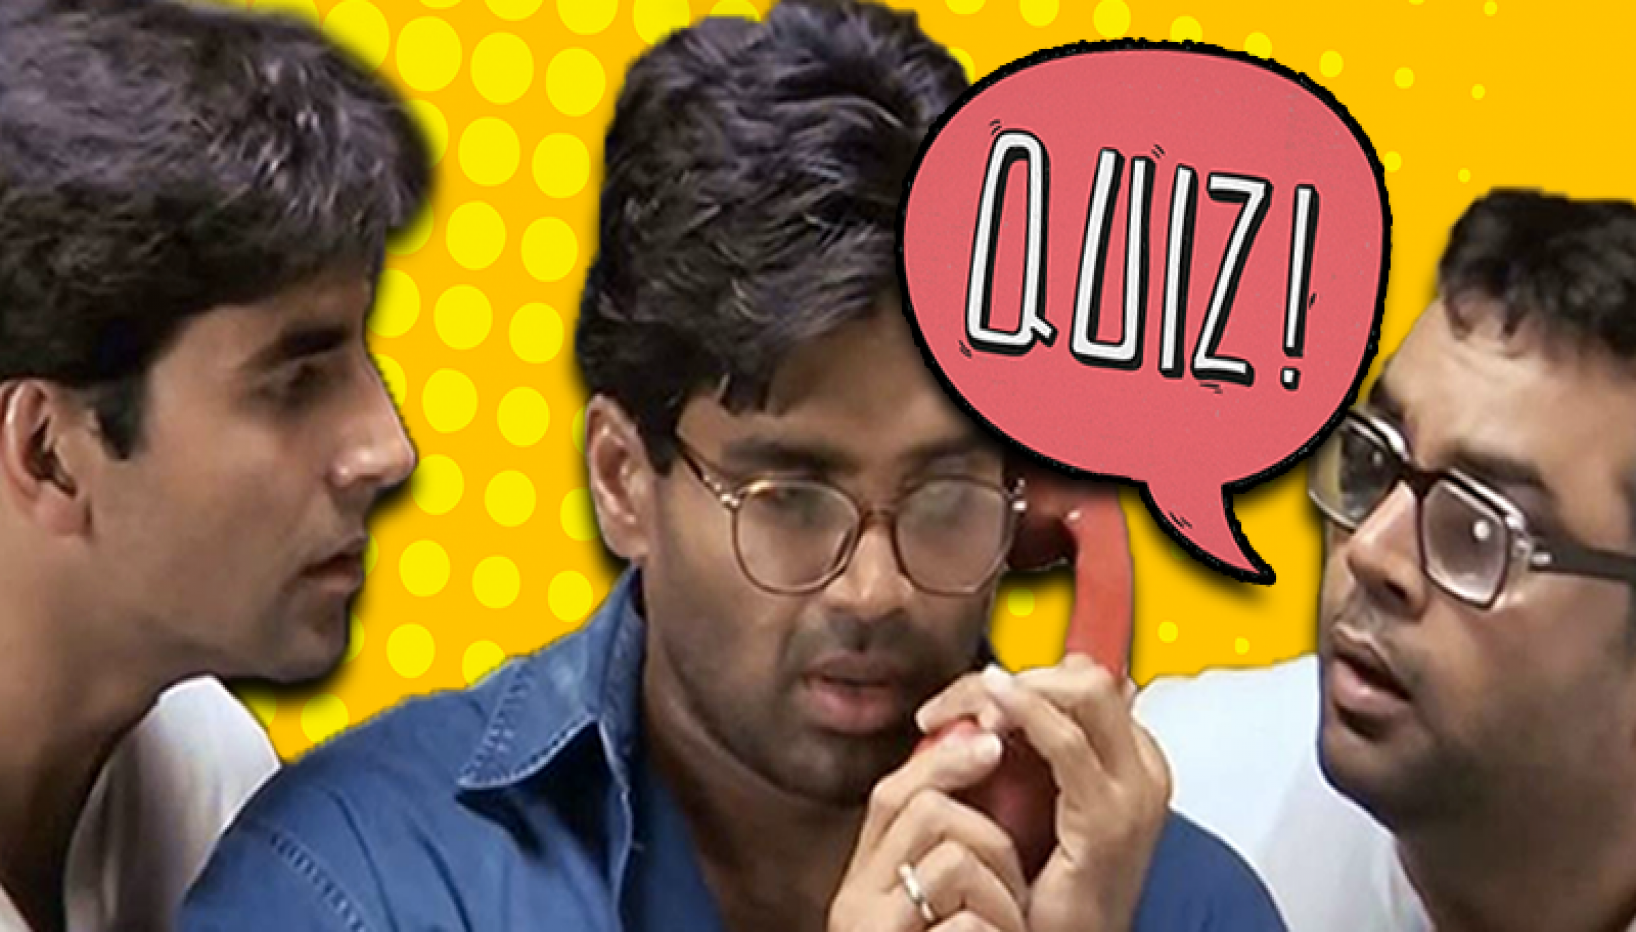 Take This Hera Pheri Quiz And Get Your Paisa Doubled In 21 Days!